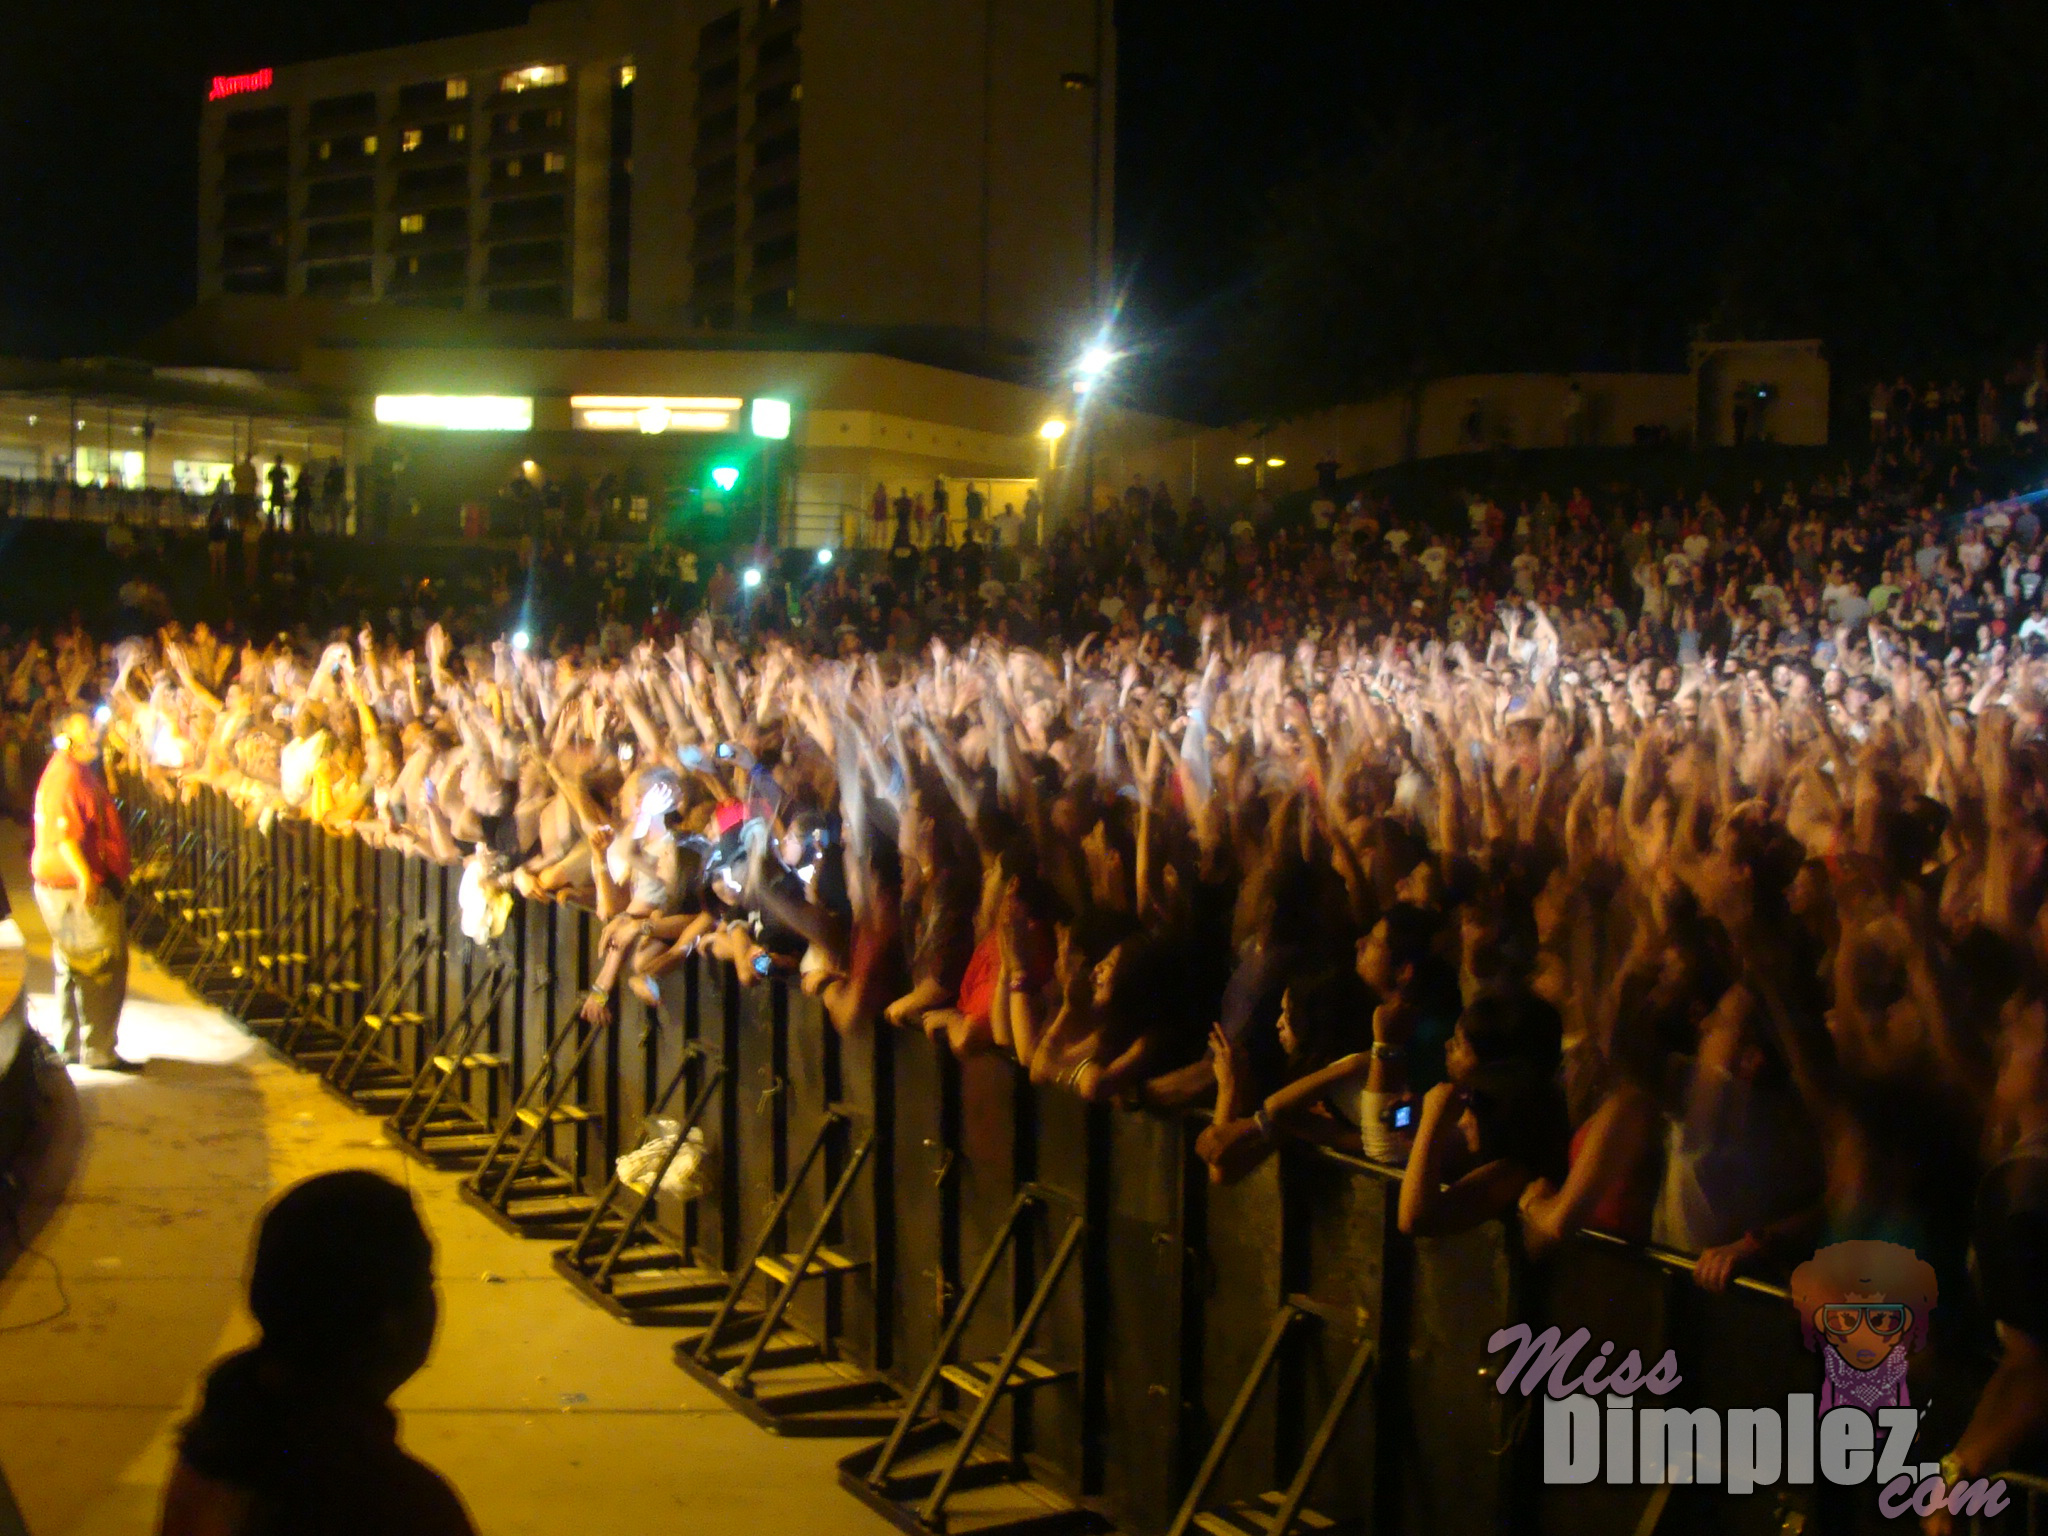 EXCLUSIVE: Lupe Fiasco LIVE At Mesa Amphitheater – Miss Dimplez